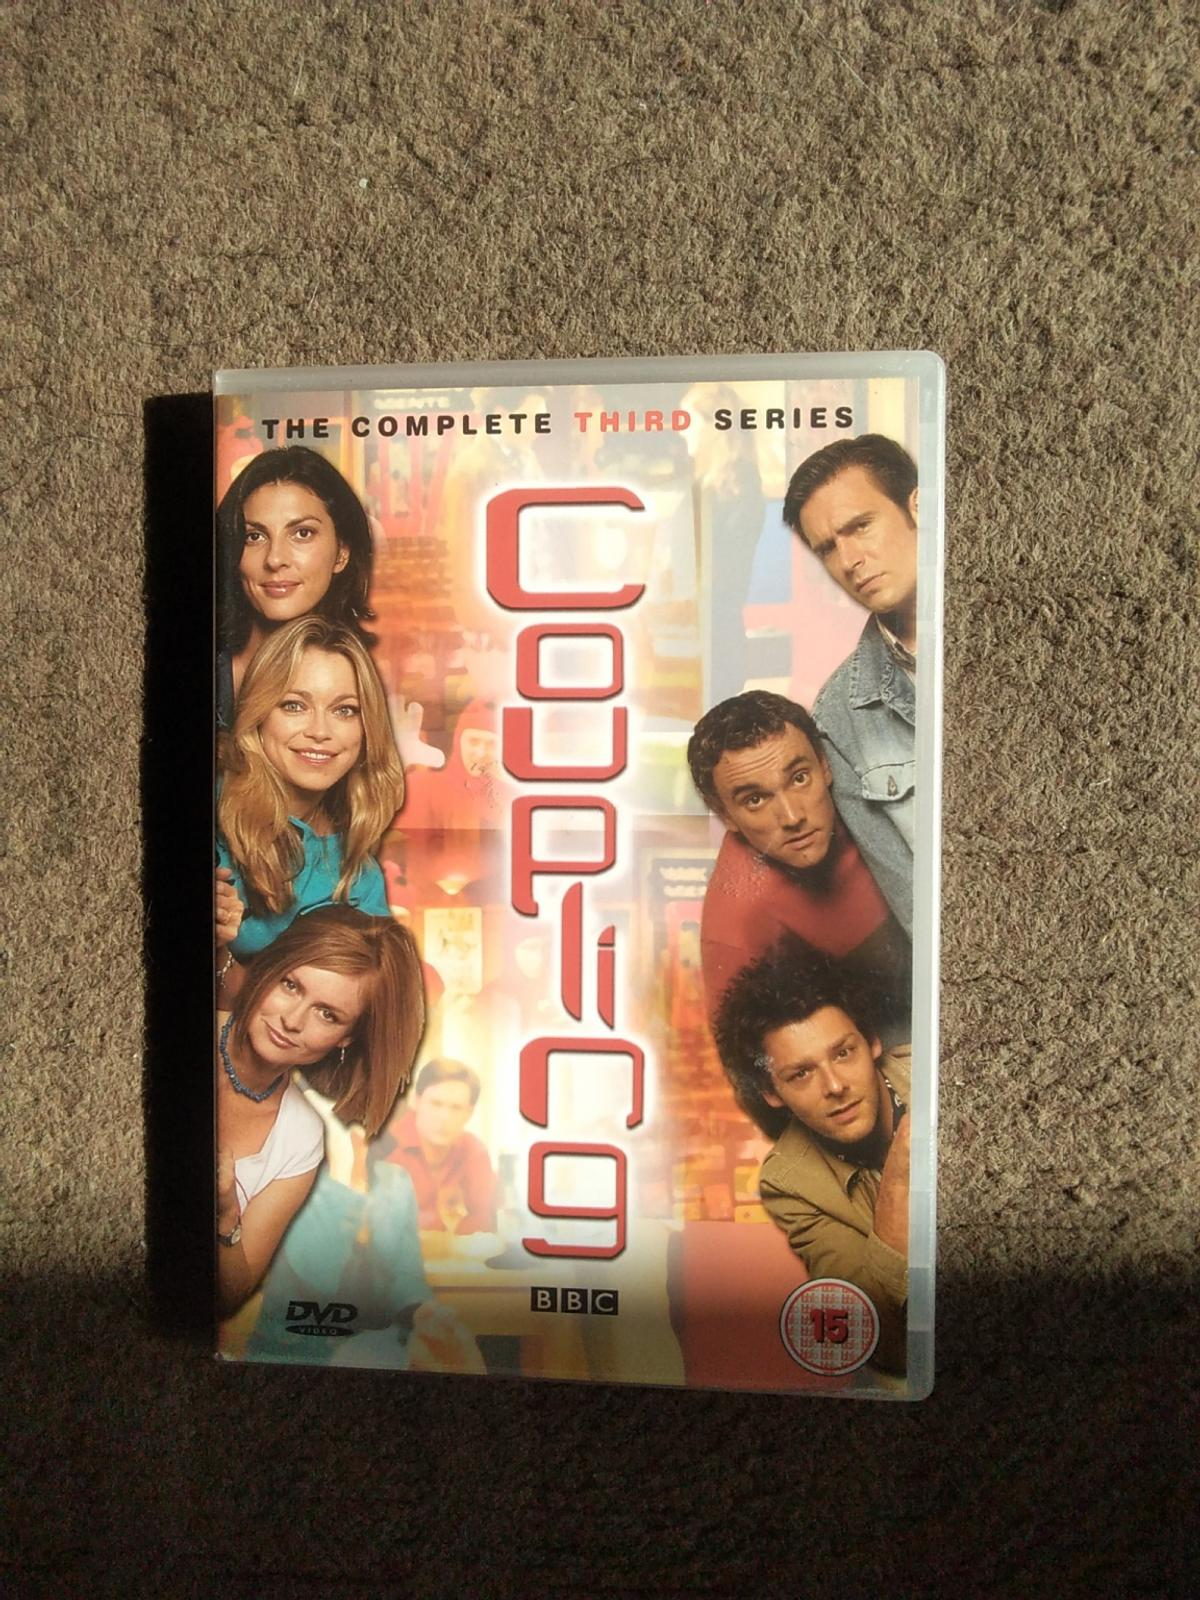 COUPLING BBC THE COMPLETE THIRD SERIES 2 X DVDS BOXED SET PICK UP OR CAN POST TO YOU